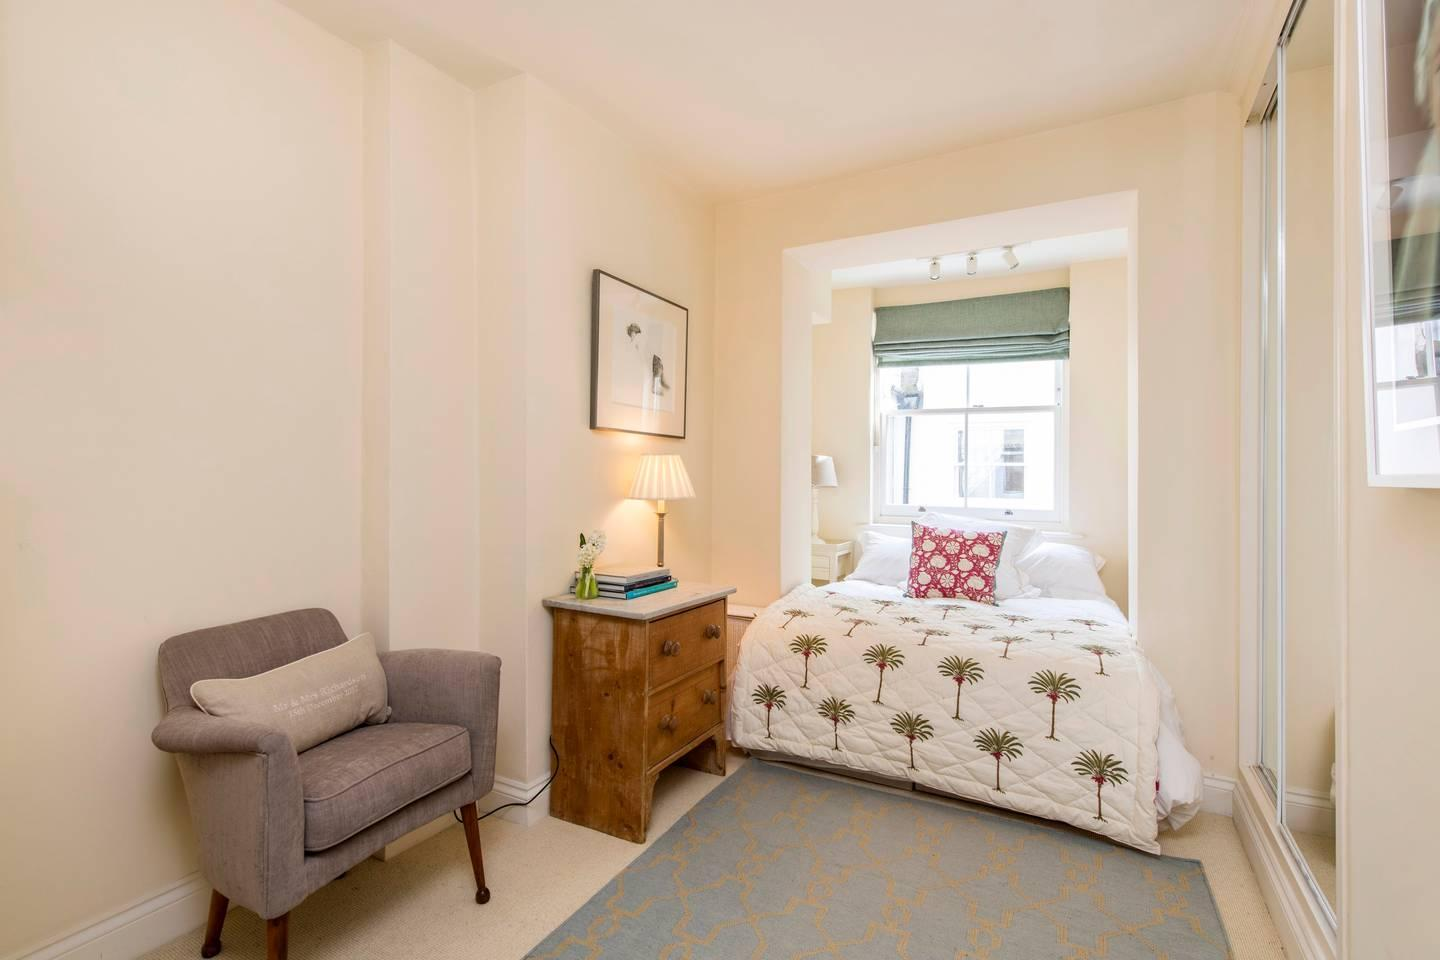 Property Image 2 - Gorgeous Apartment in an Iconic Location